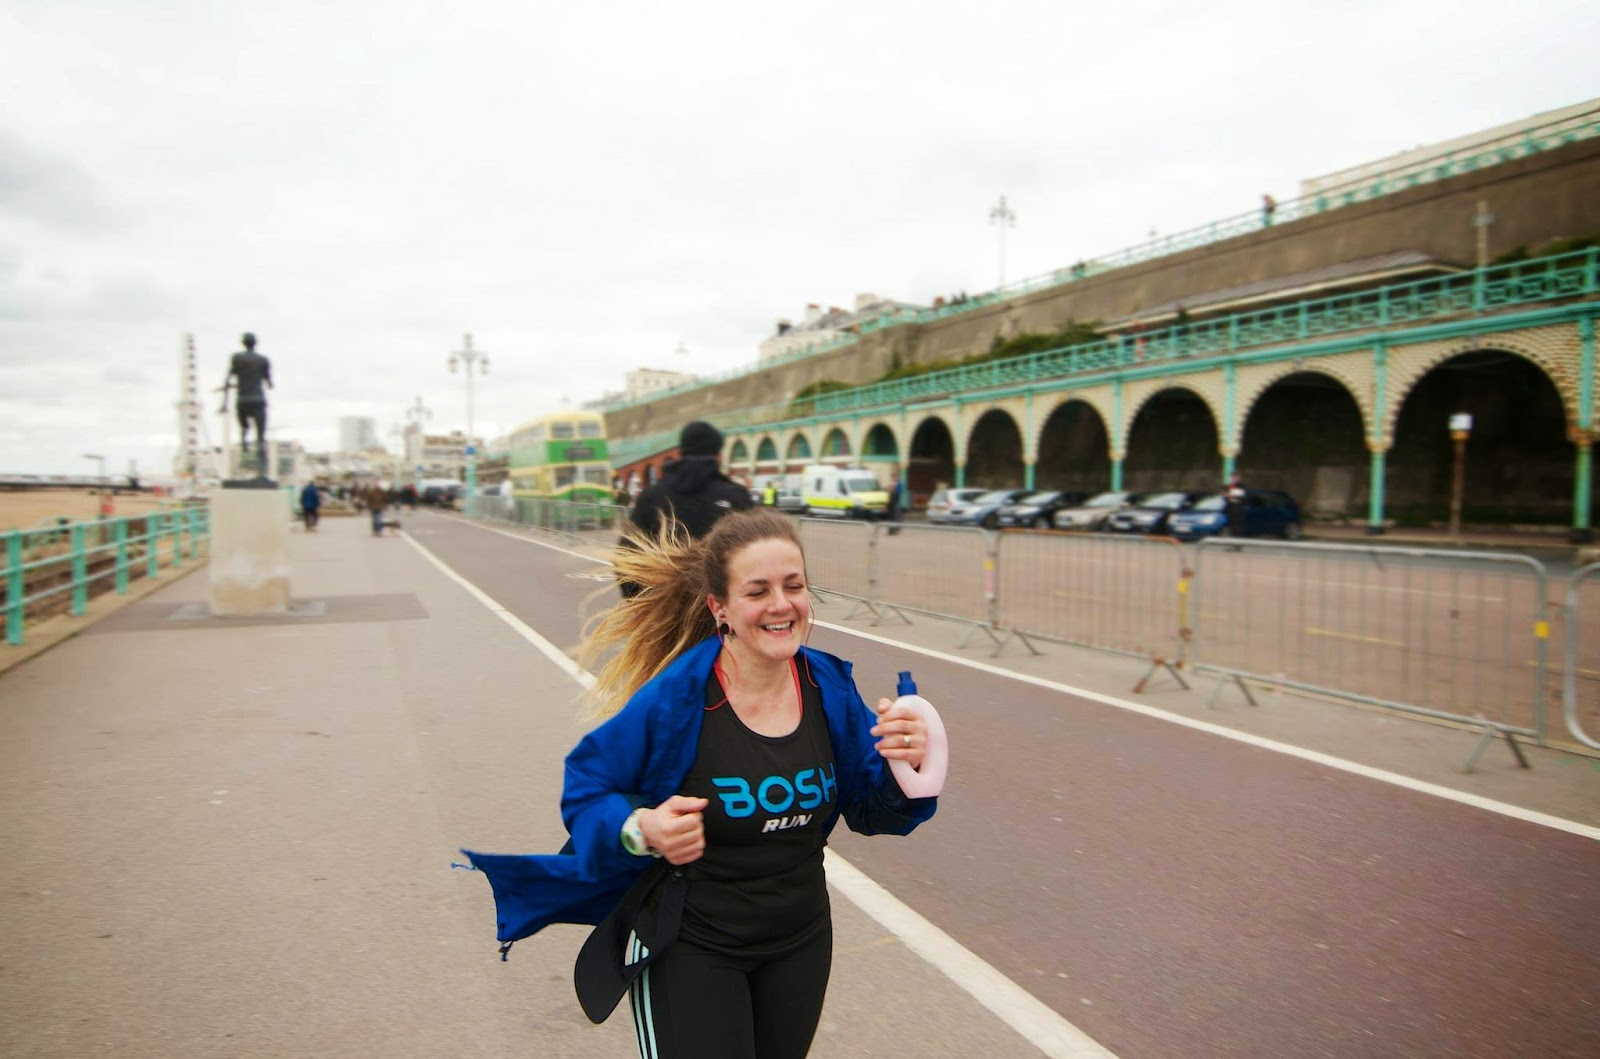 Brighton Marathon Training - Tess Agnew - photo by Mark West